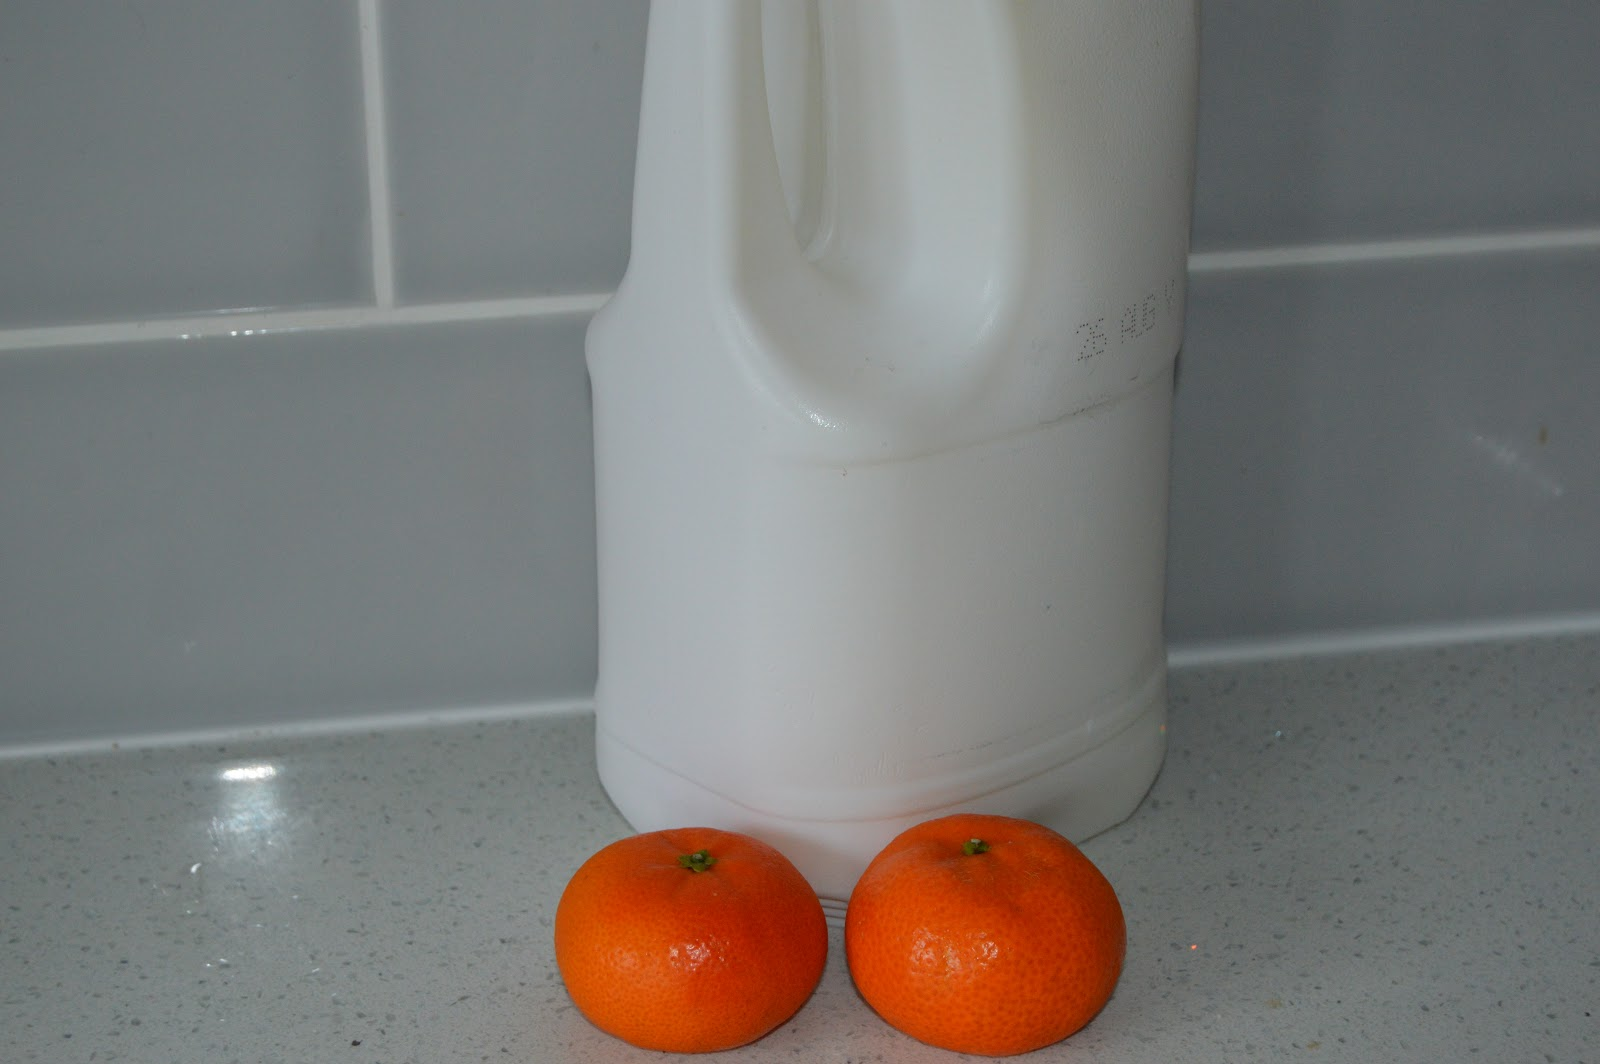 A bottle of milk and two oranges